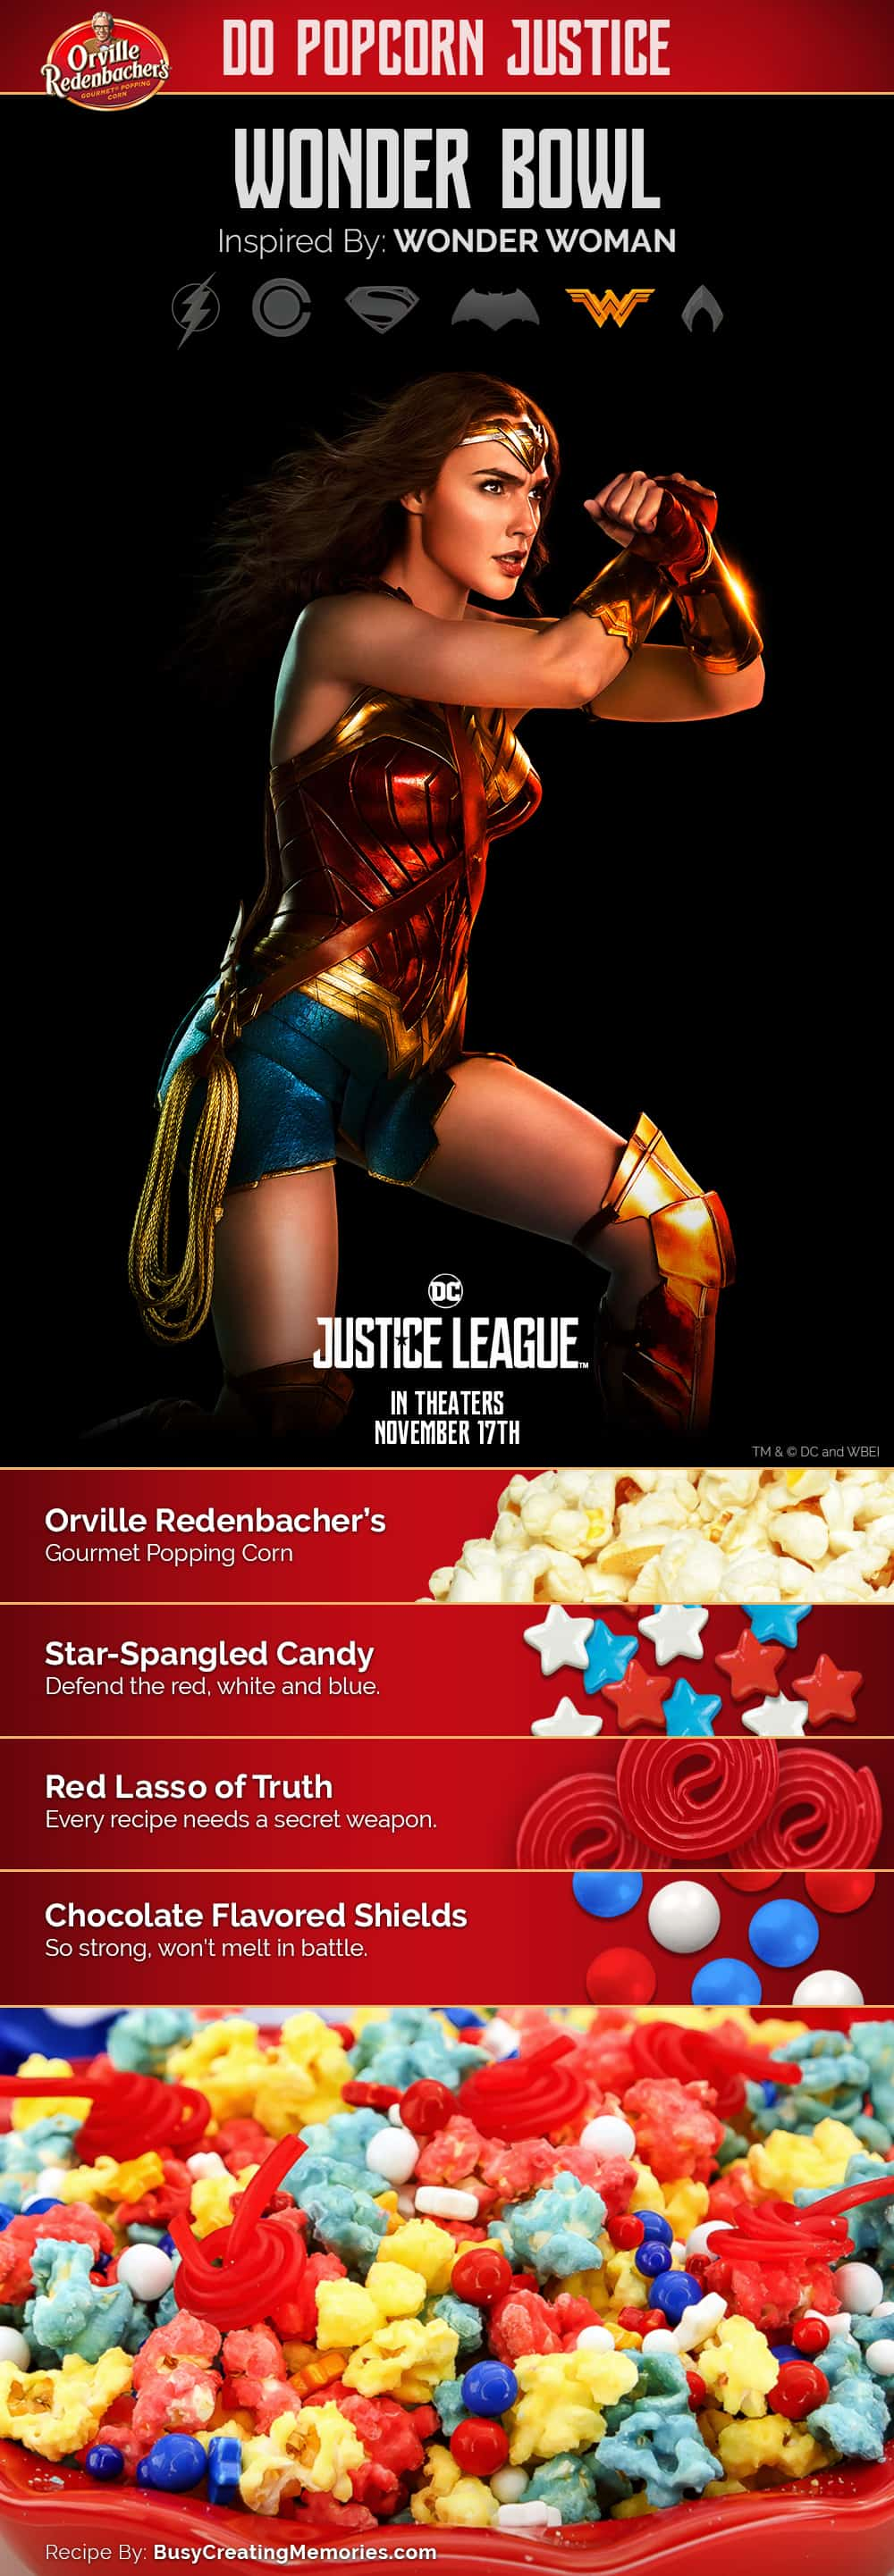 Wonder Bowl Popcorn: Inspired by Wonder Woman